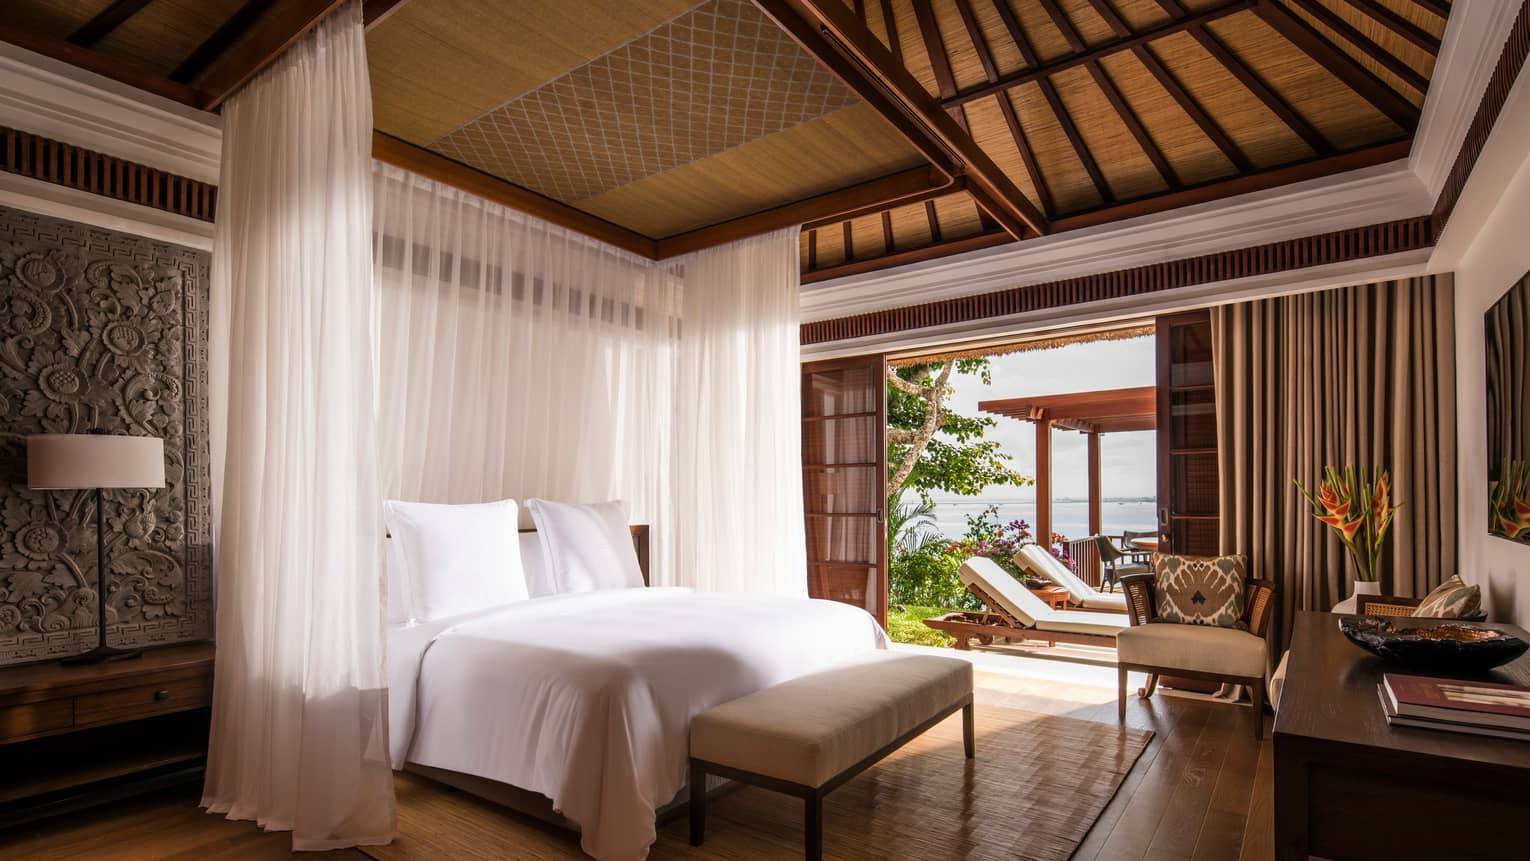 Villa bed with sheer white curtains hanging around each side, Balinese textiles on wall, door open to sunny patio